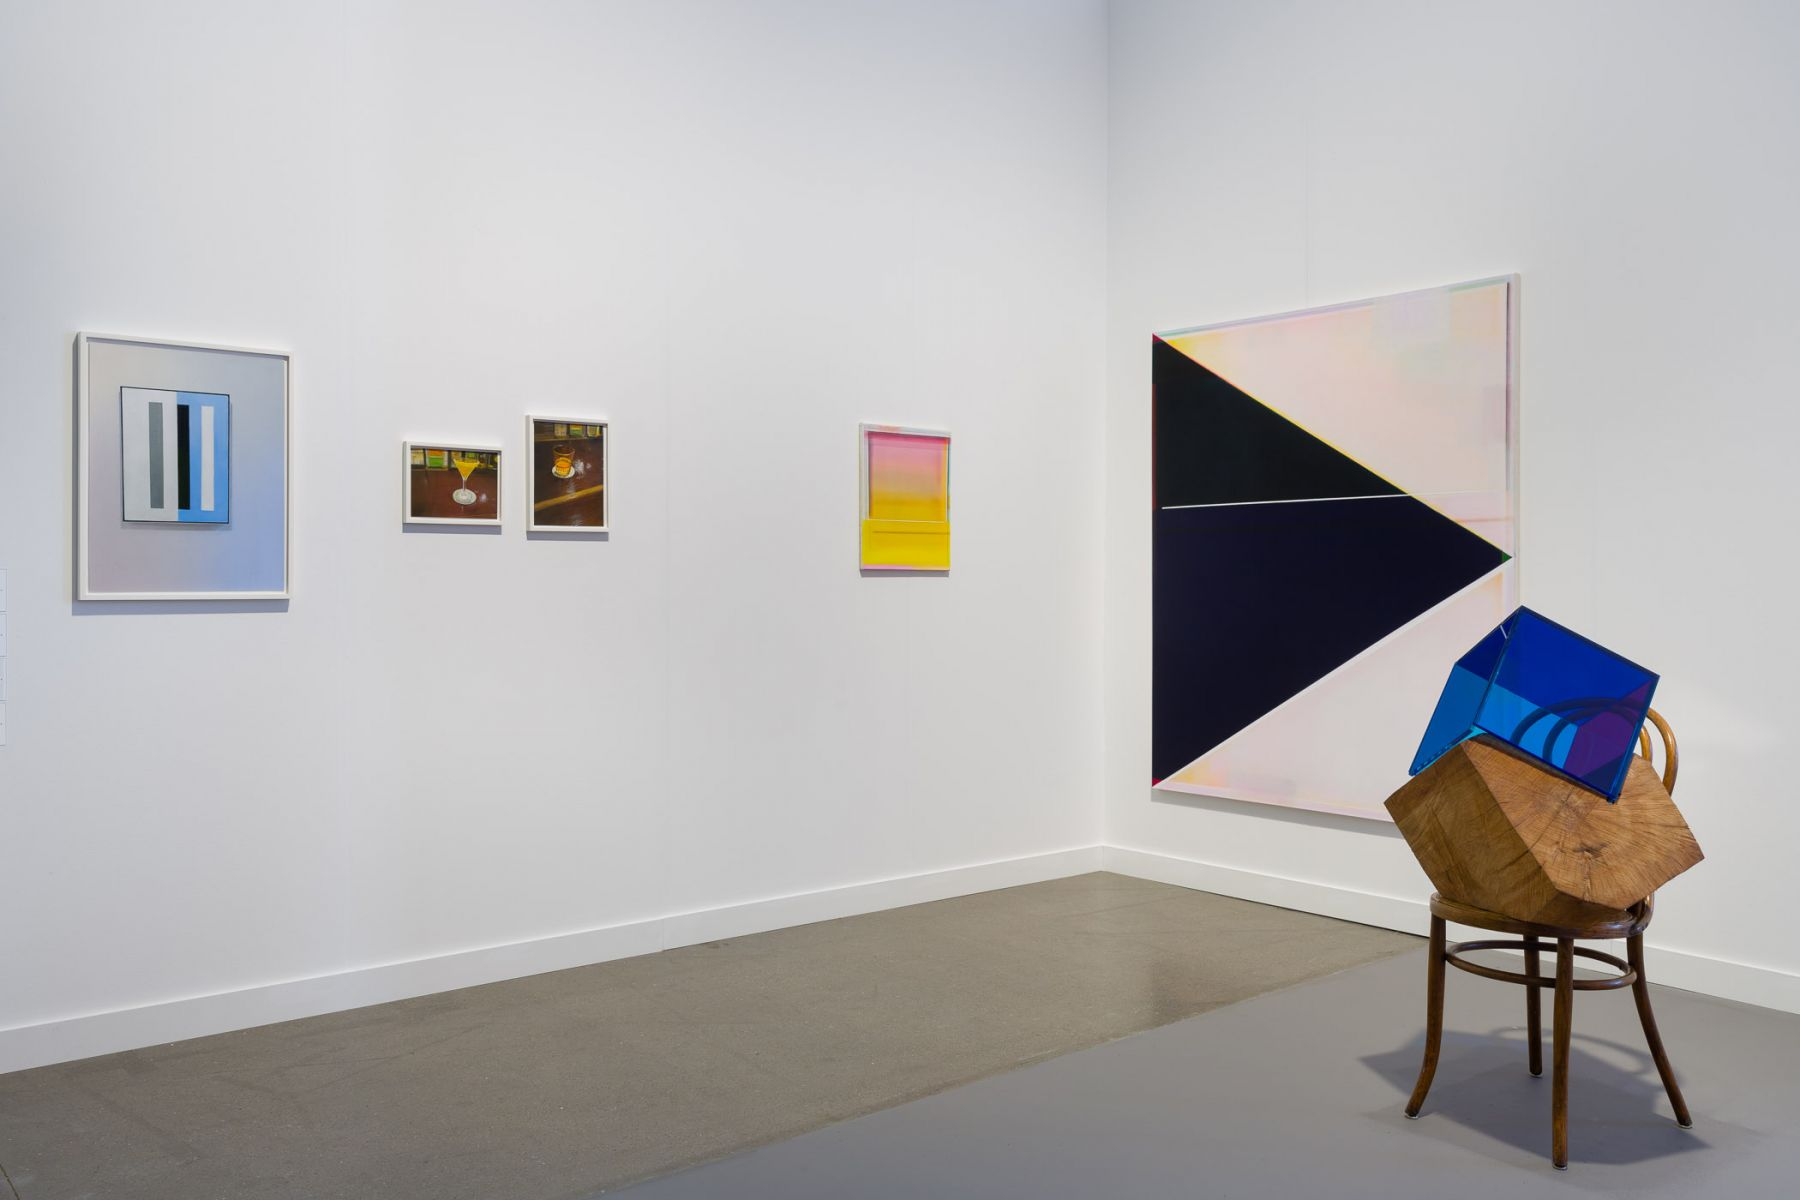 Exhibition view of LINN LÜHN at Independent New York, 2018.